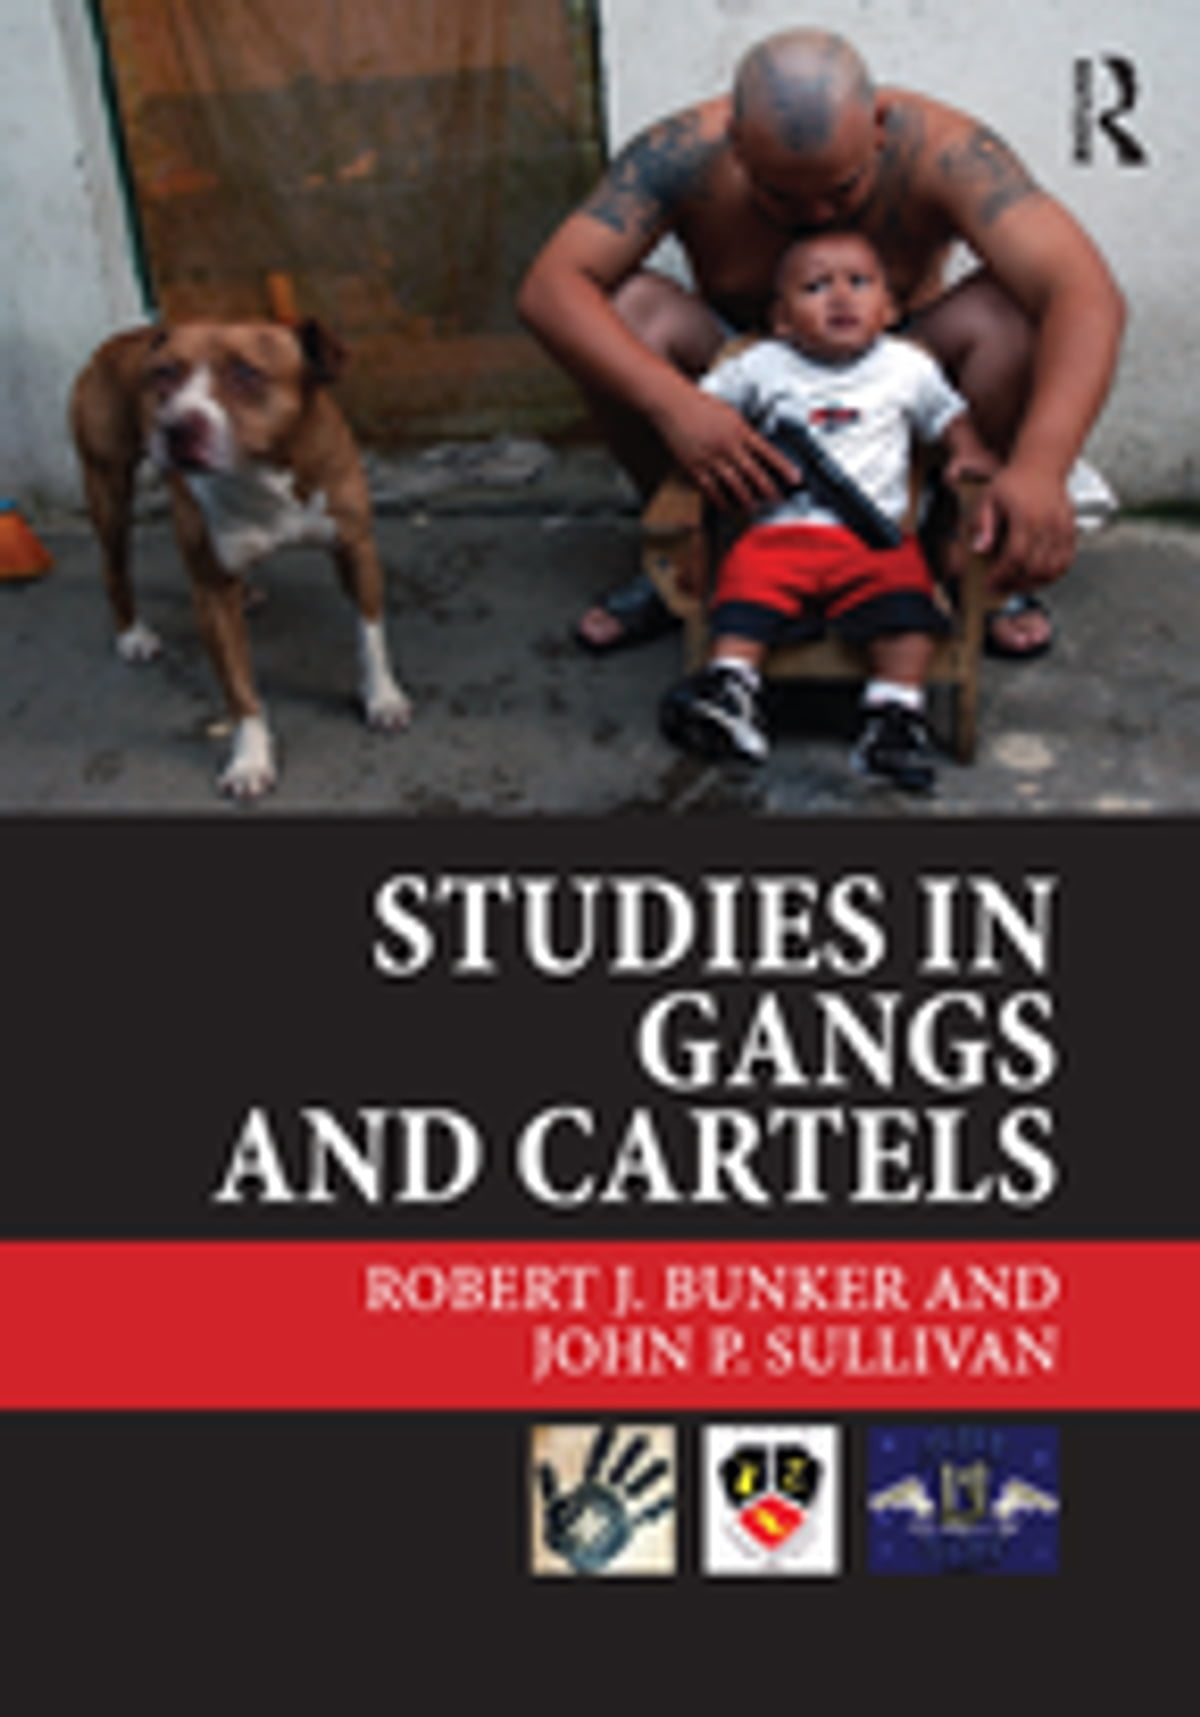 the importance of the issue of gangs in the society Gangs are obviously not a new phenomenon, but they are still a problem that has to be addressed criminal street gangs have become one of the most serious crime problems in california gang violence--particularly assaults, drive-by shootings, homicides, and brutal home-invasion robberies--accounts.